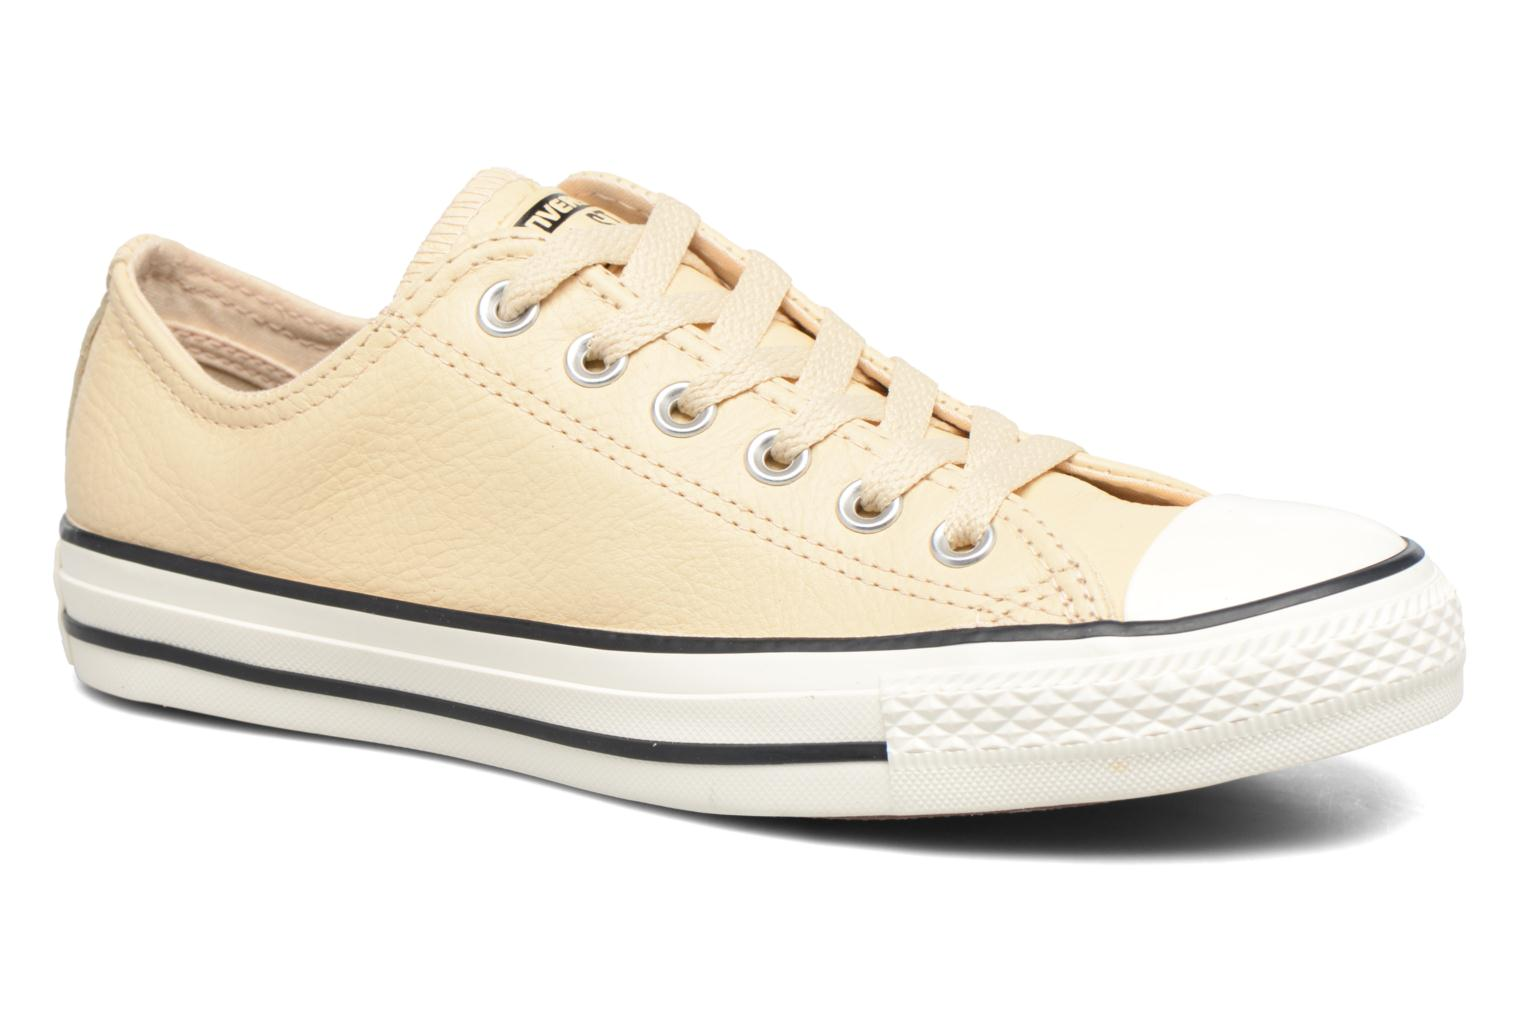 Light Twine/Light Twine/Egret Converse Chuck Taylor All Star Tumbled Leather Ox (Beige)